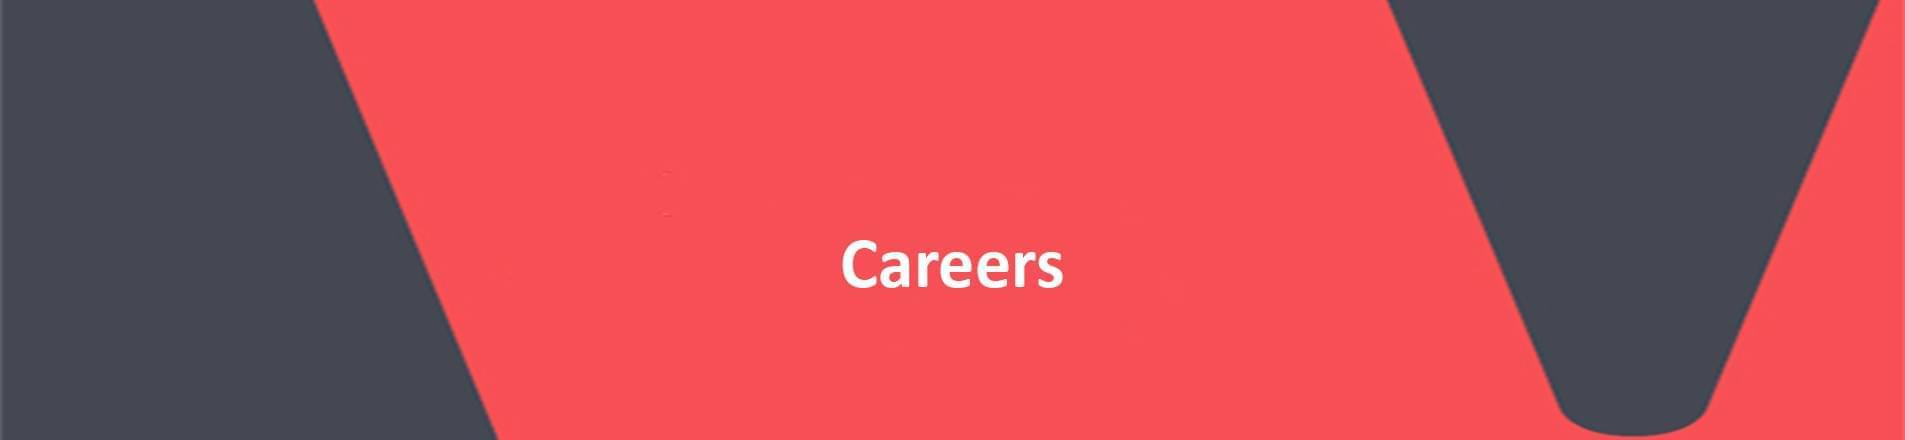 Word Careers on VERCIDA branded red and grey background